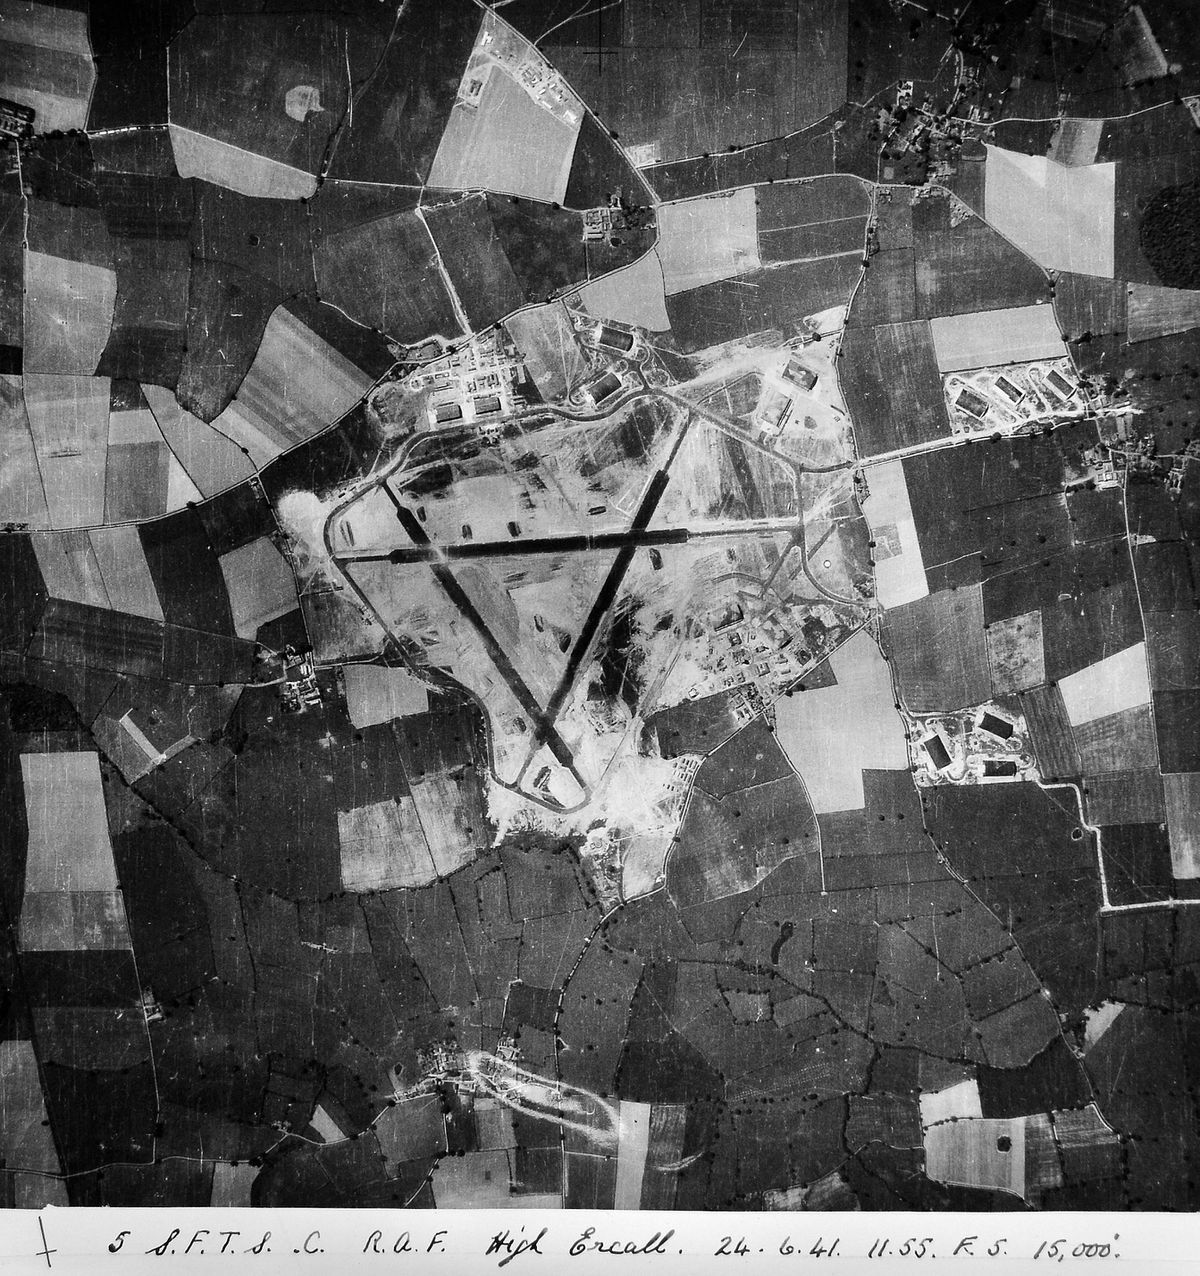 During the war Peter used to cycle at weekends to watch goings-on at High Ercall airfield – this aerial view, courtesy of Sir Michael Leighton, dates from June 1941.